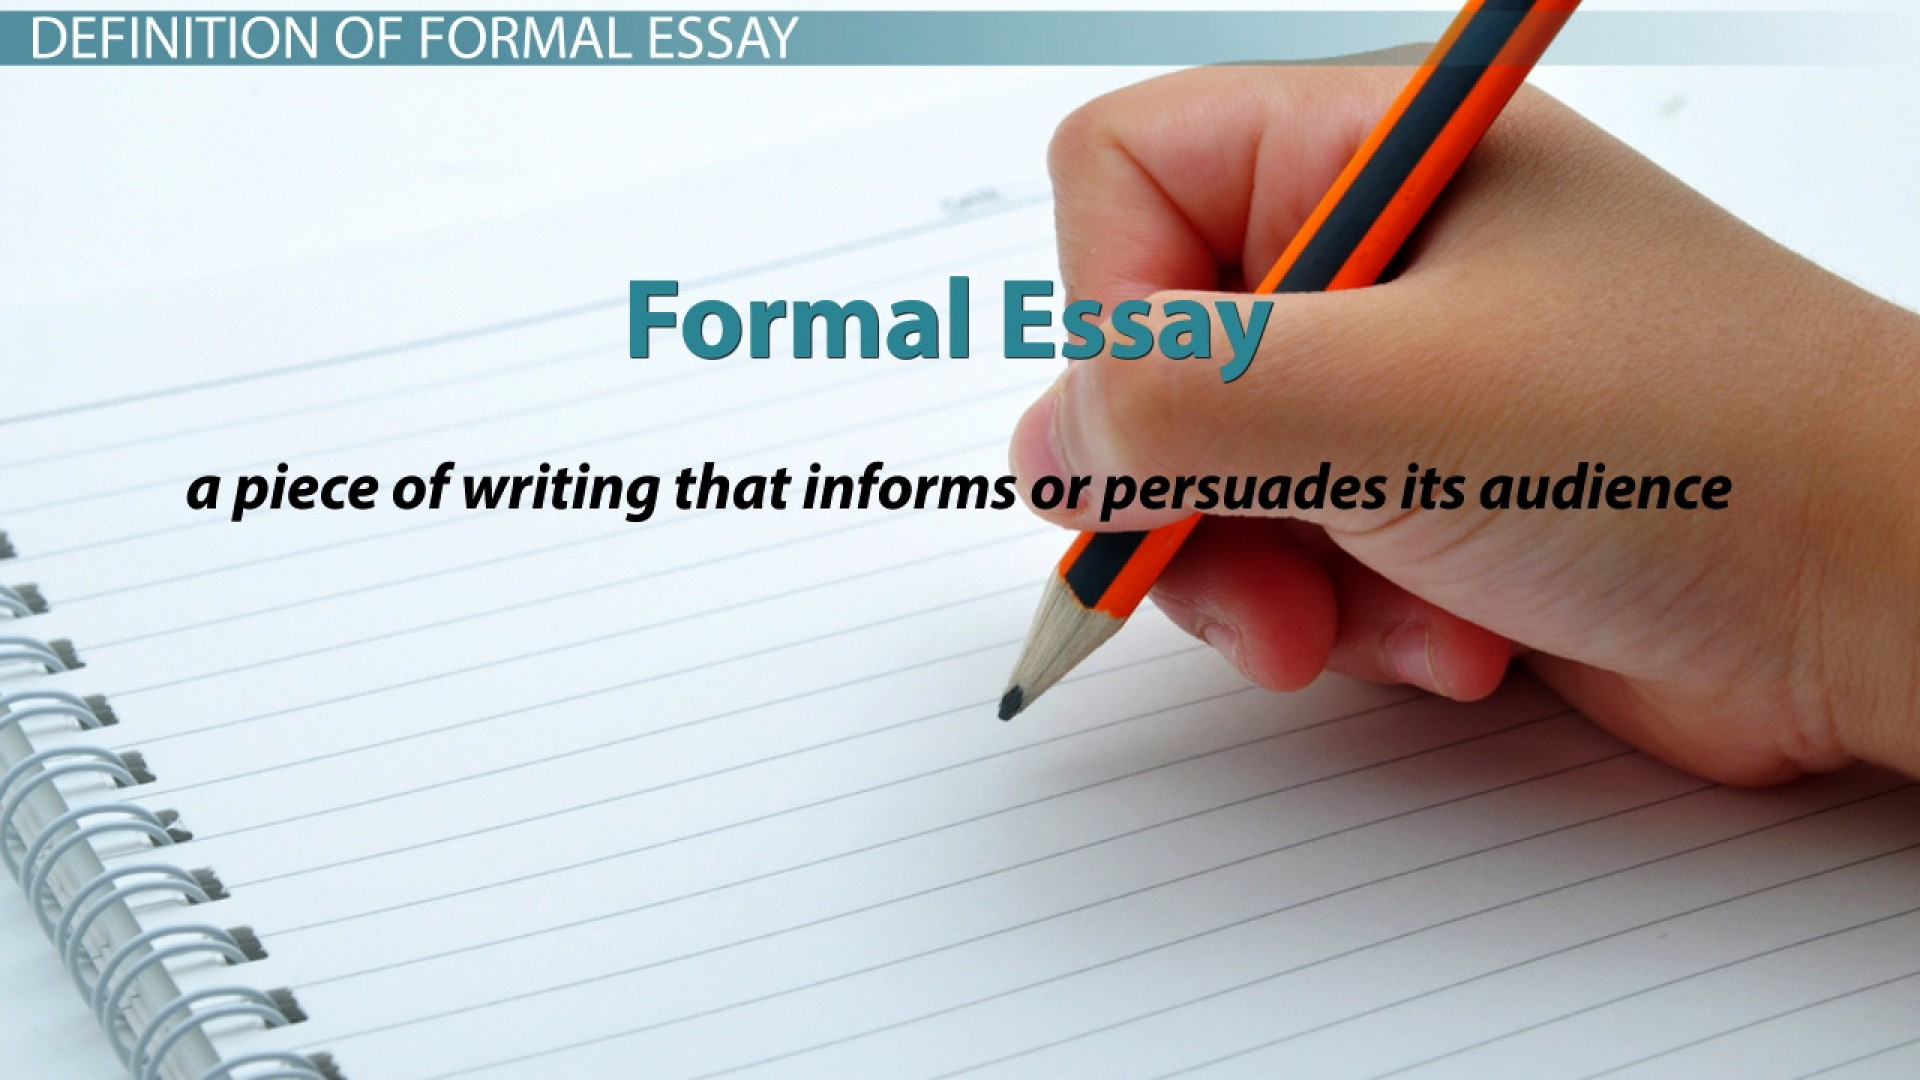 006 Essay Definition In Literature Example  Formal Examples 111863 Astounding Of Critical English Define Familiar Personal Meaning1920